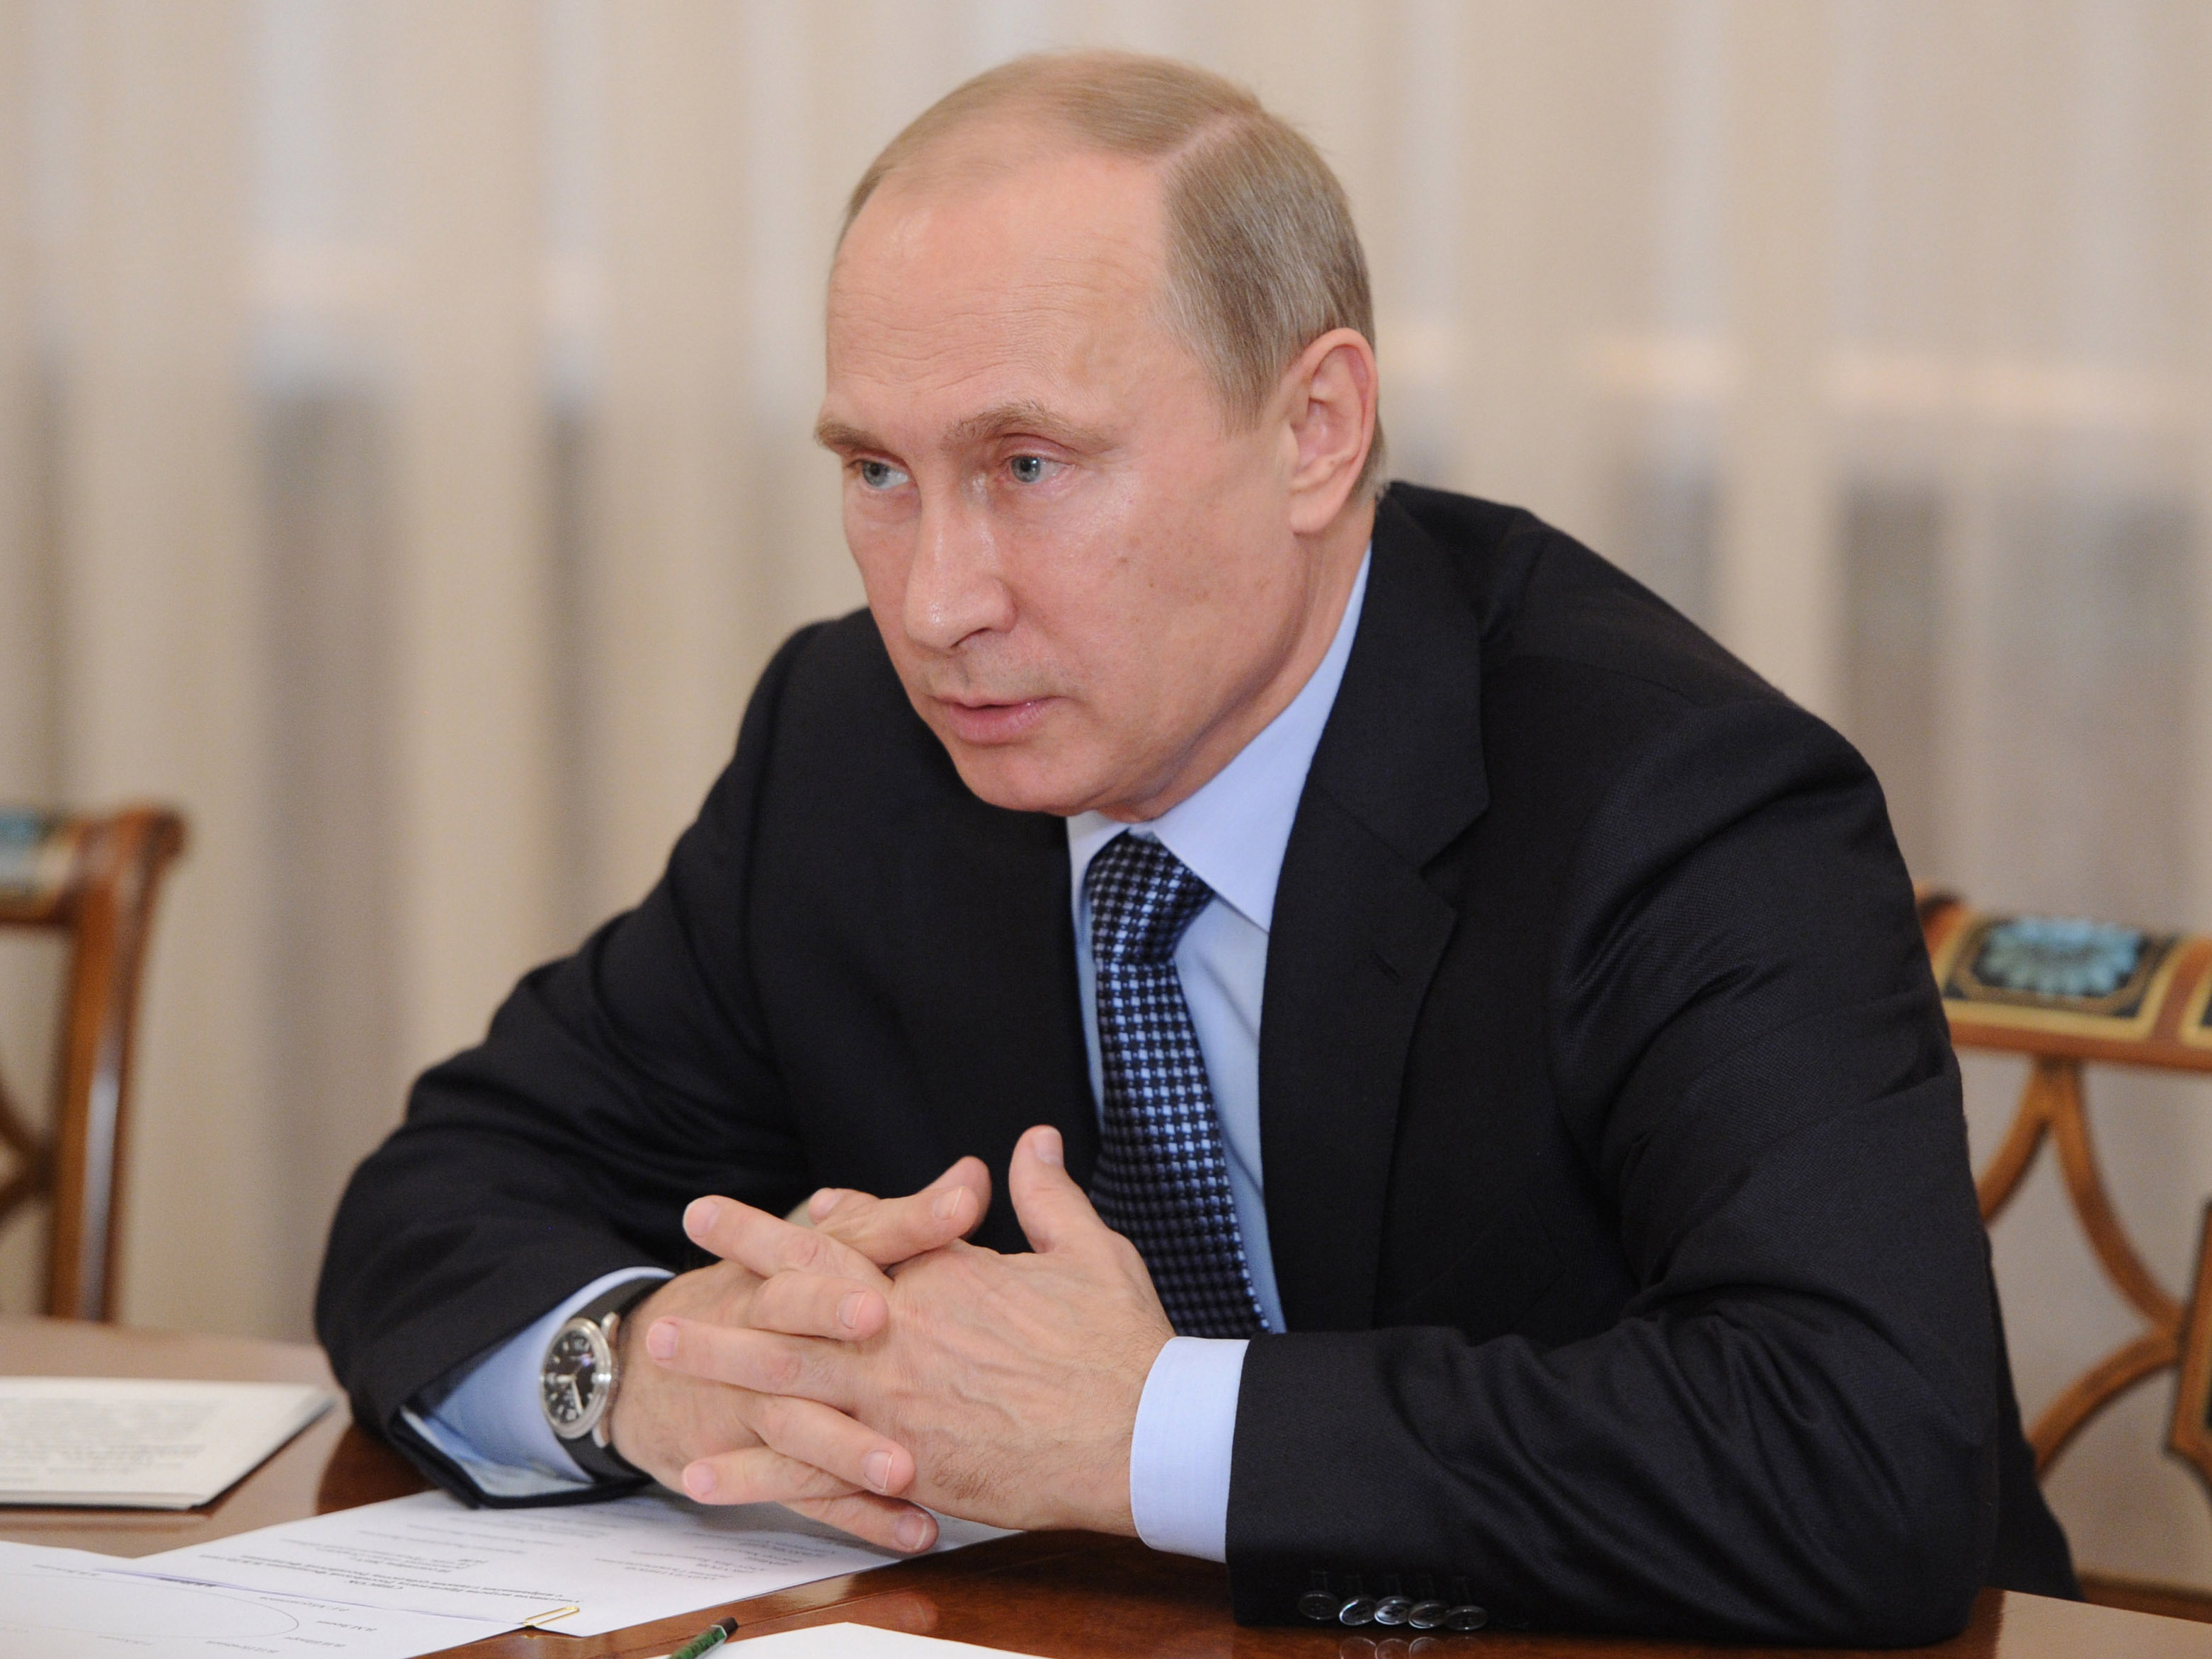 Challenging Obama, Putin Appeals Directly To Americans On Syria